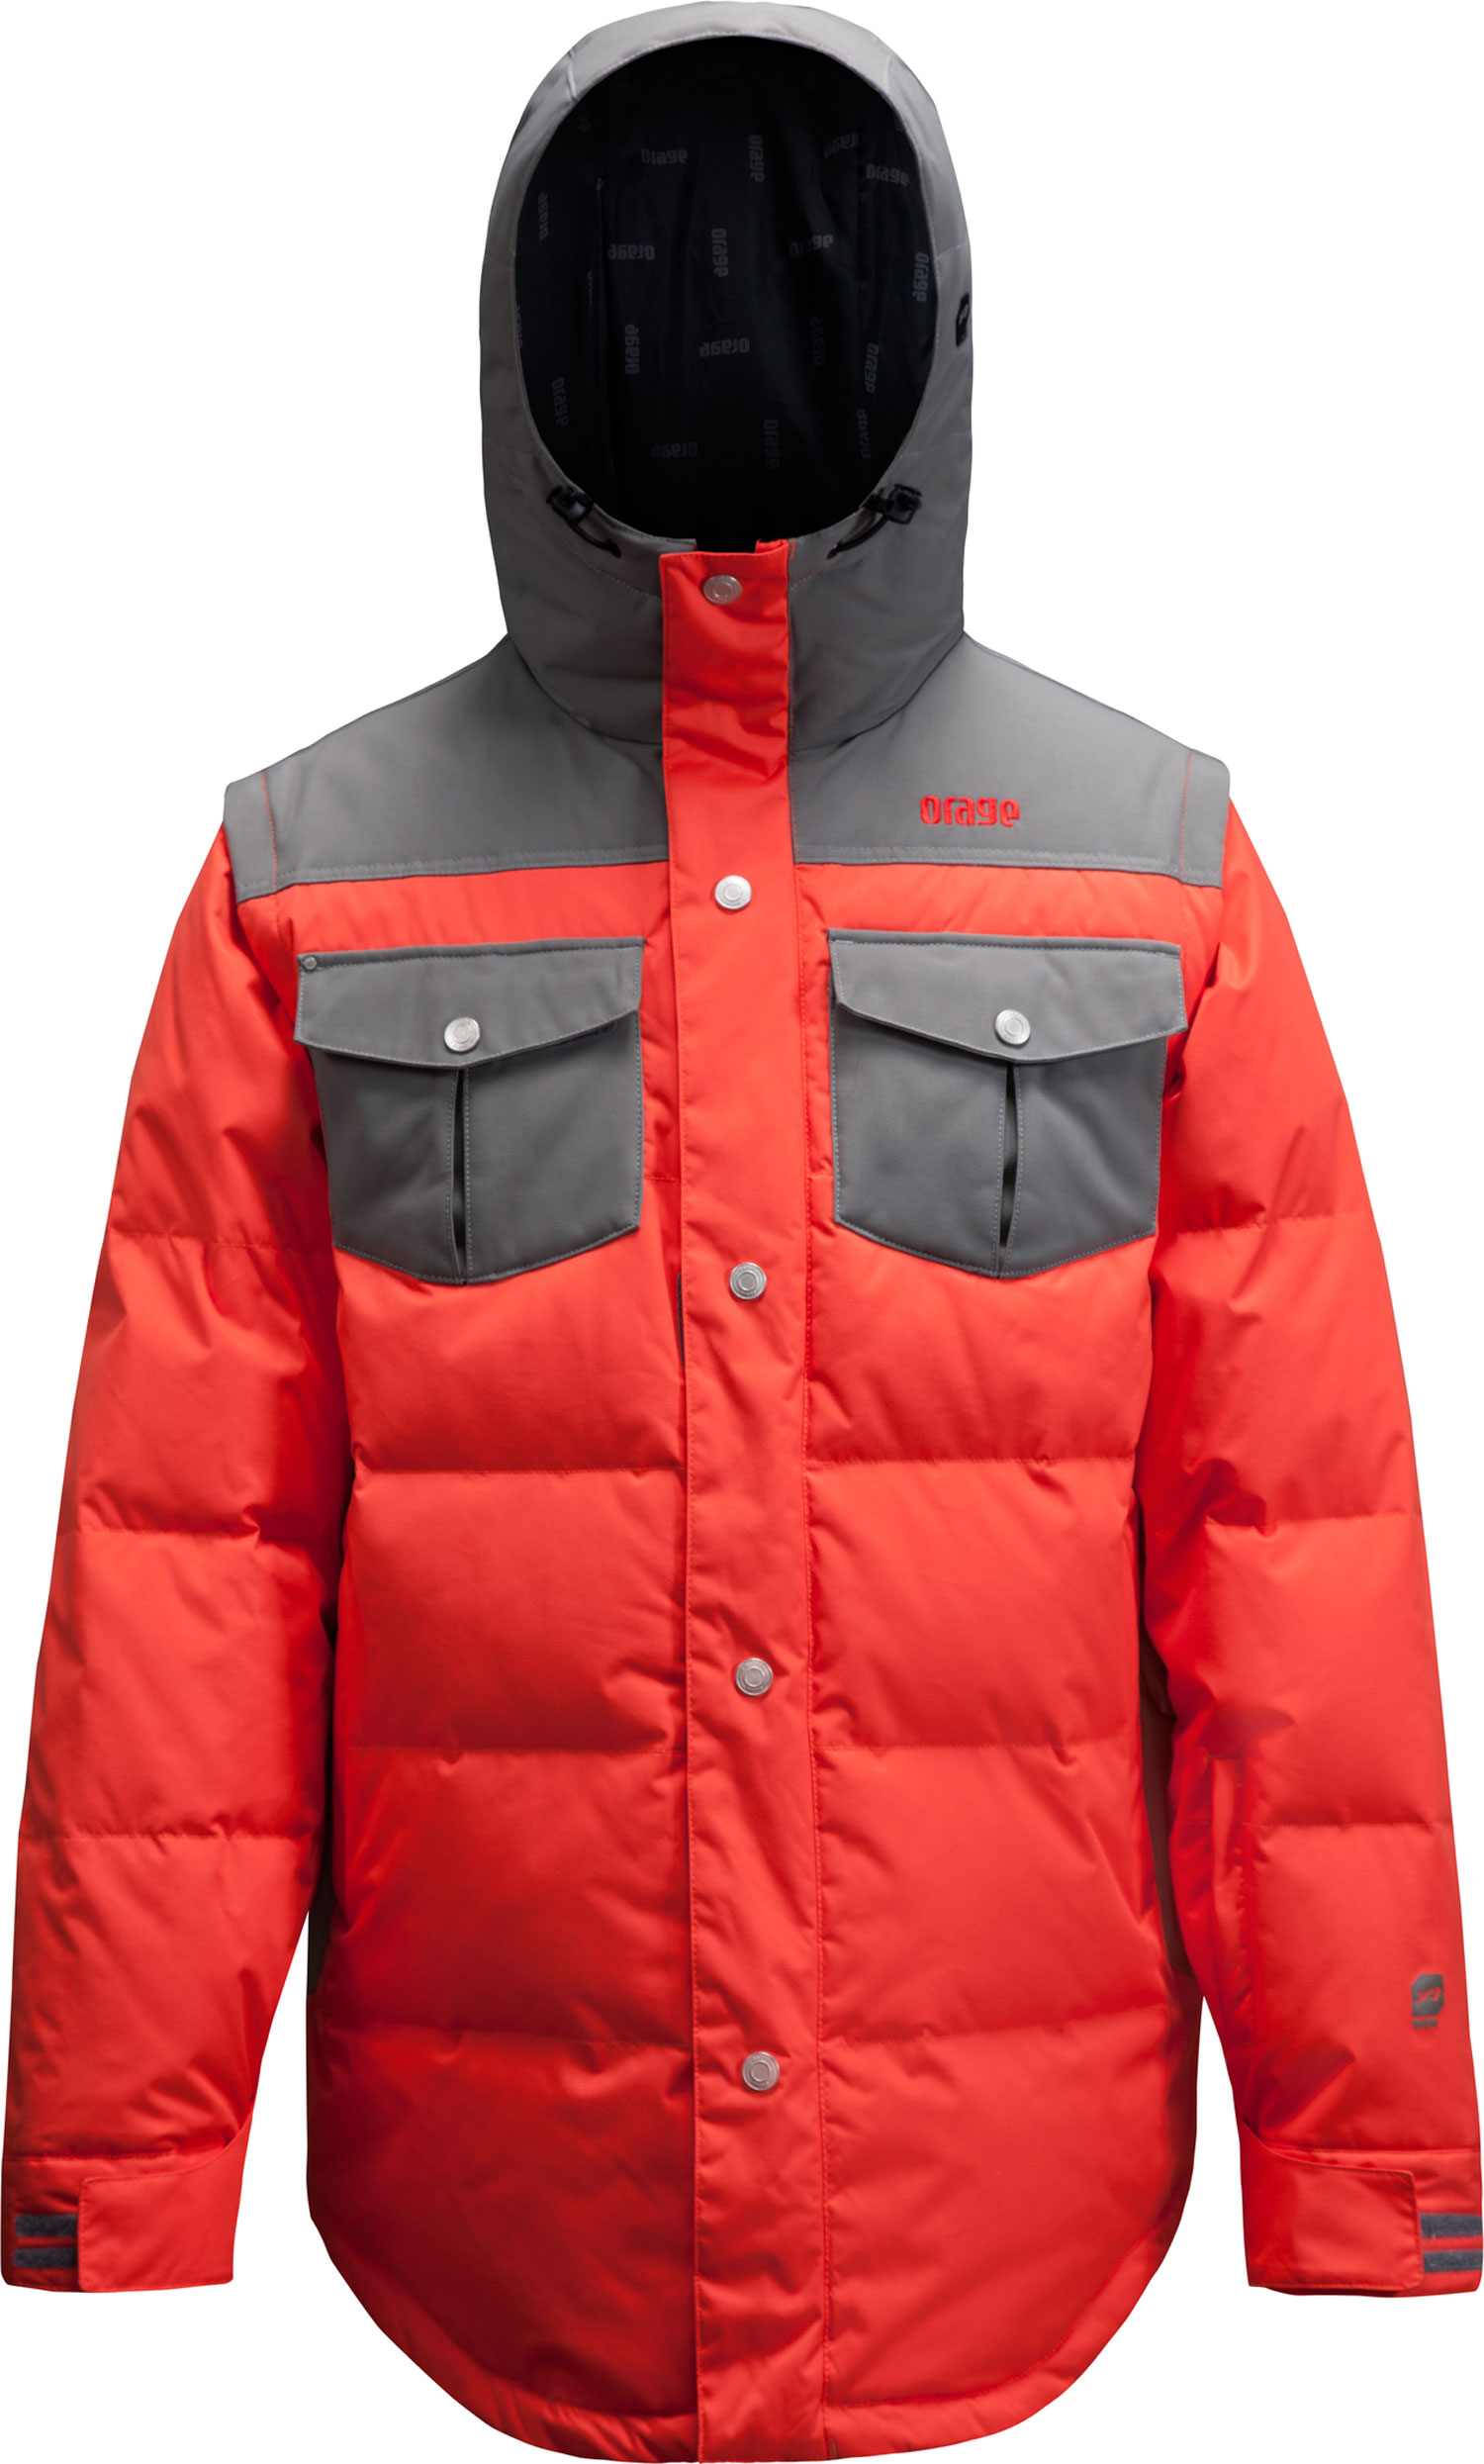 Ski Key Features of the Orage B-Dog Jacket: Prime 10: Canvas 2 ply, 100% Nylon, ECO DWR 80/10, 185g/185m2 Prime 10: Nylon Twill 2 ply, 100% Nylon, ECO DWR 80/10, 160g/m2 Powder skirt Antimicrobial hand cuffs Printed lining with fleece panel insert Down (80% Duck/50% Synthetic) Removable sleeves Playing cards included - $223.95